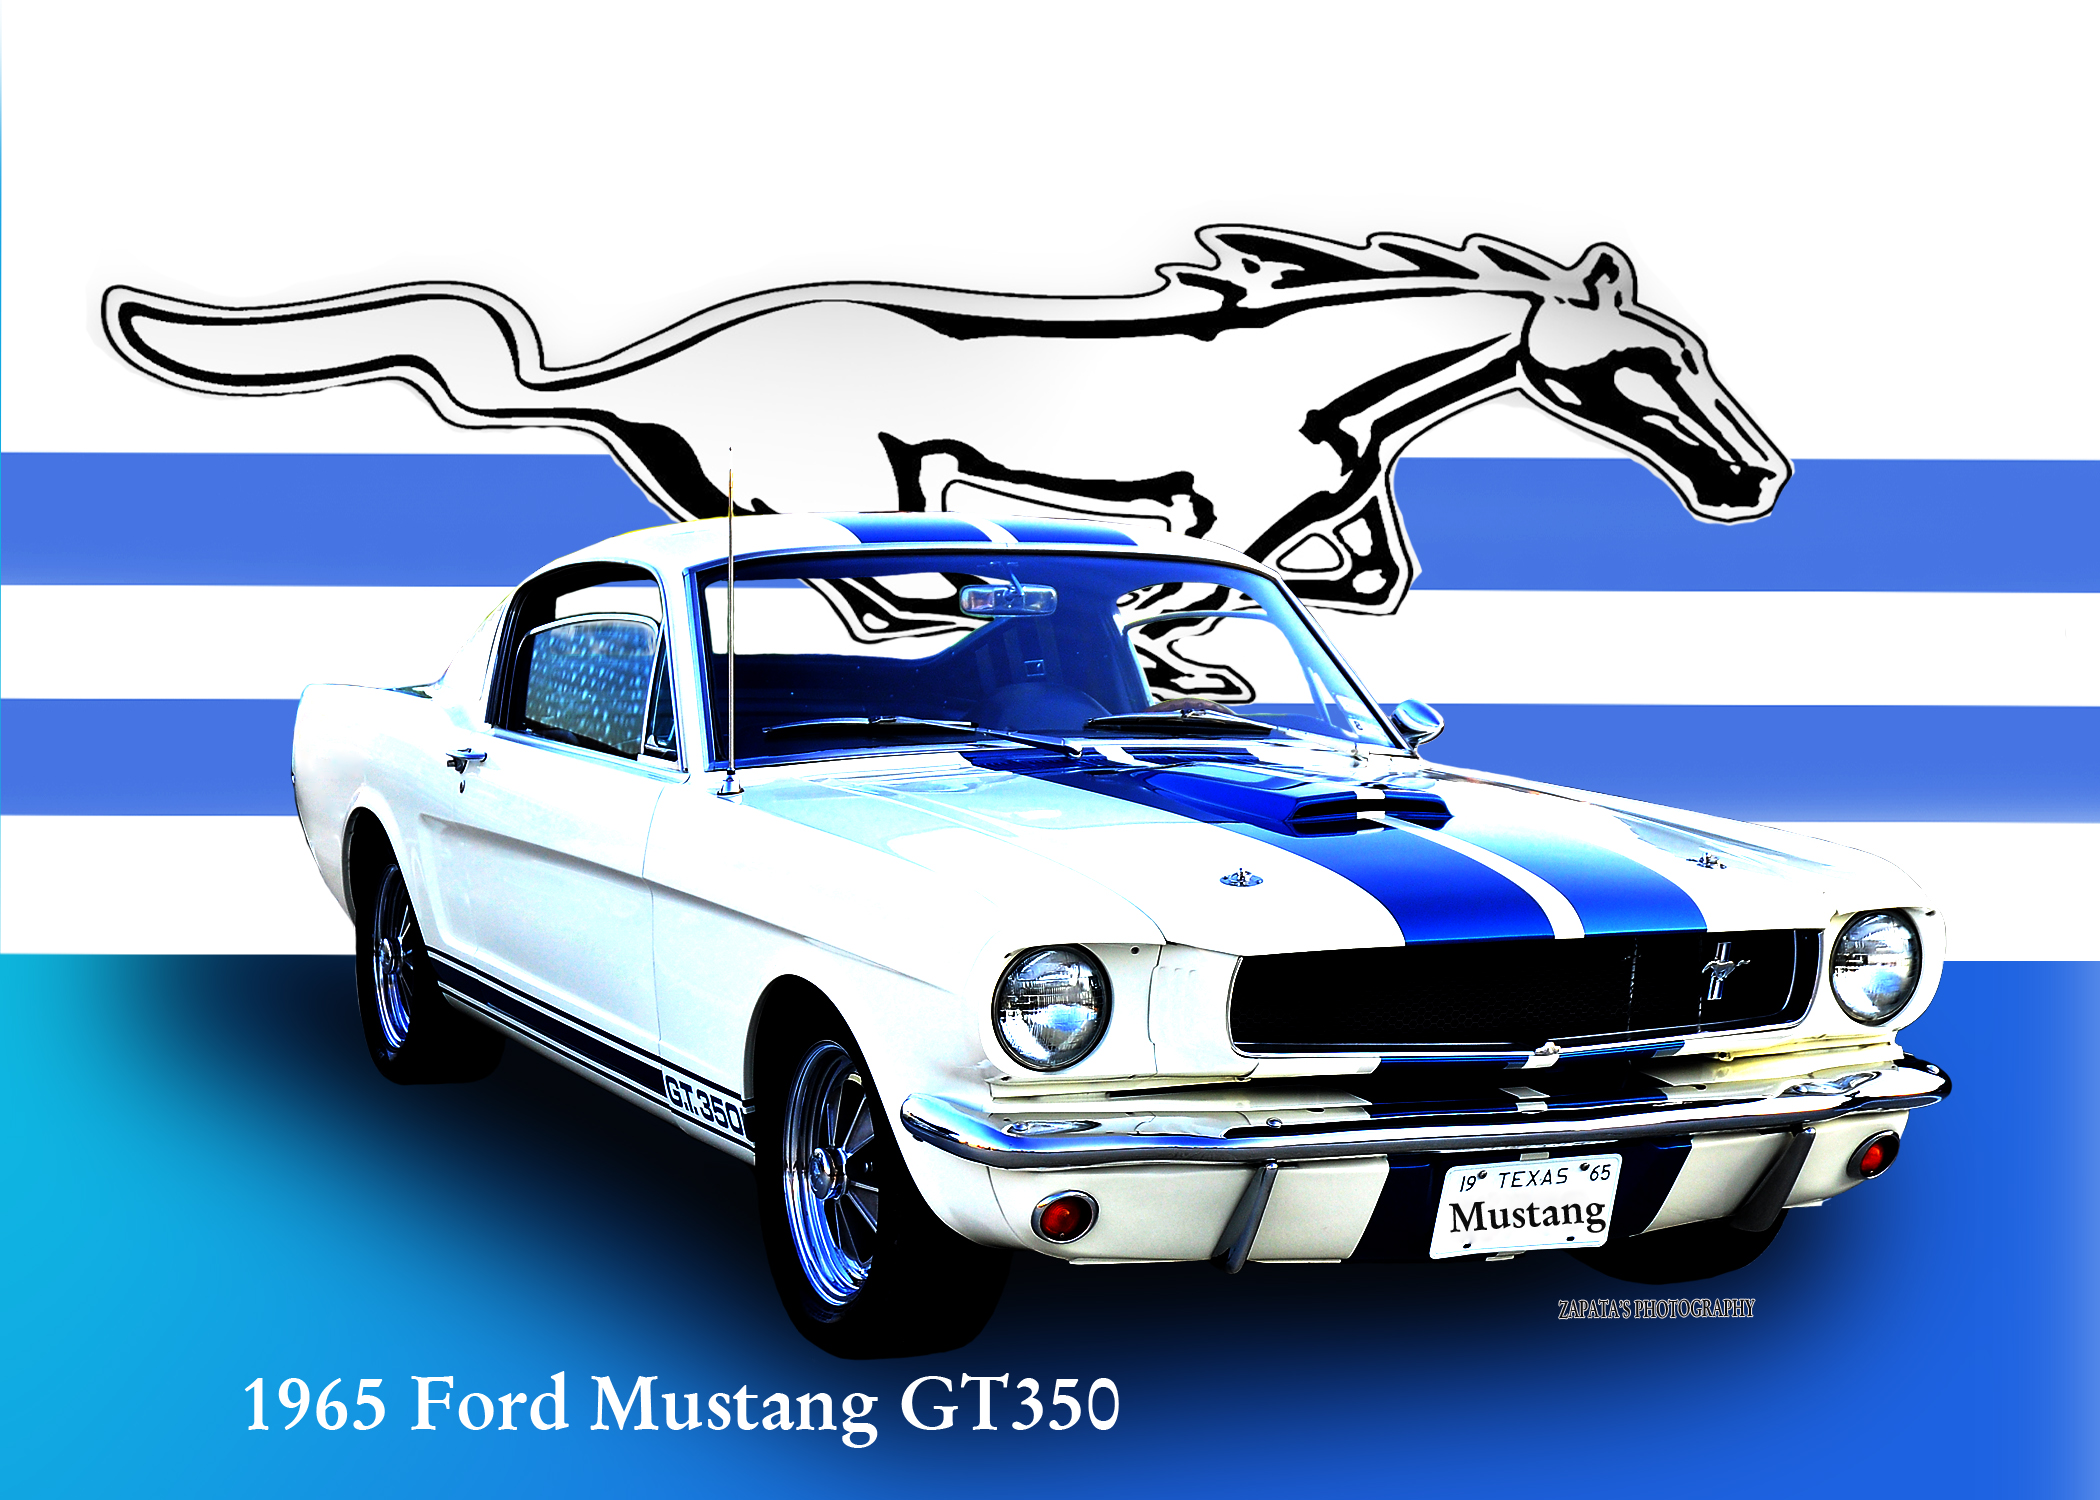 Ford Mustang GT 350 Photos Reviews News Specs Buy car 2100x1500